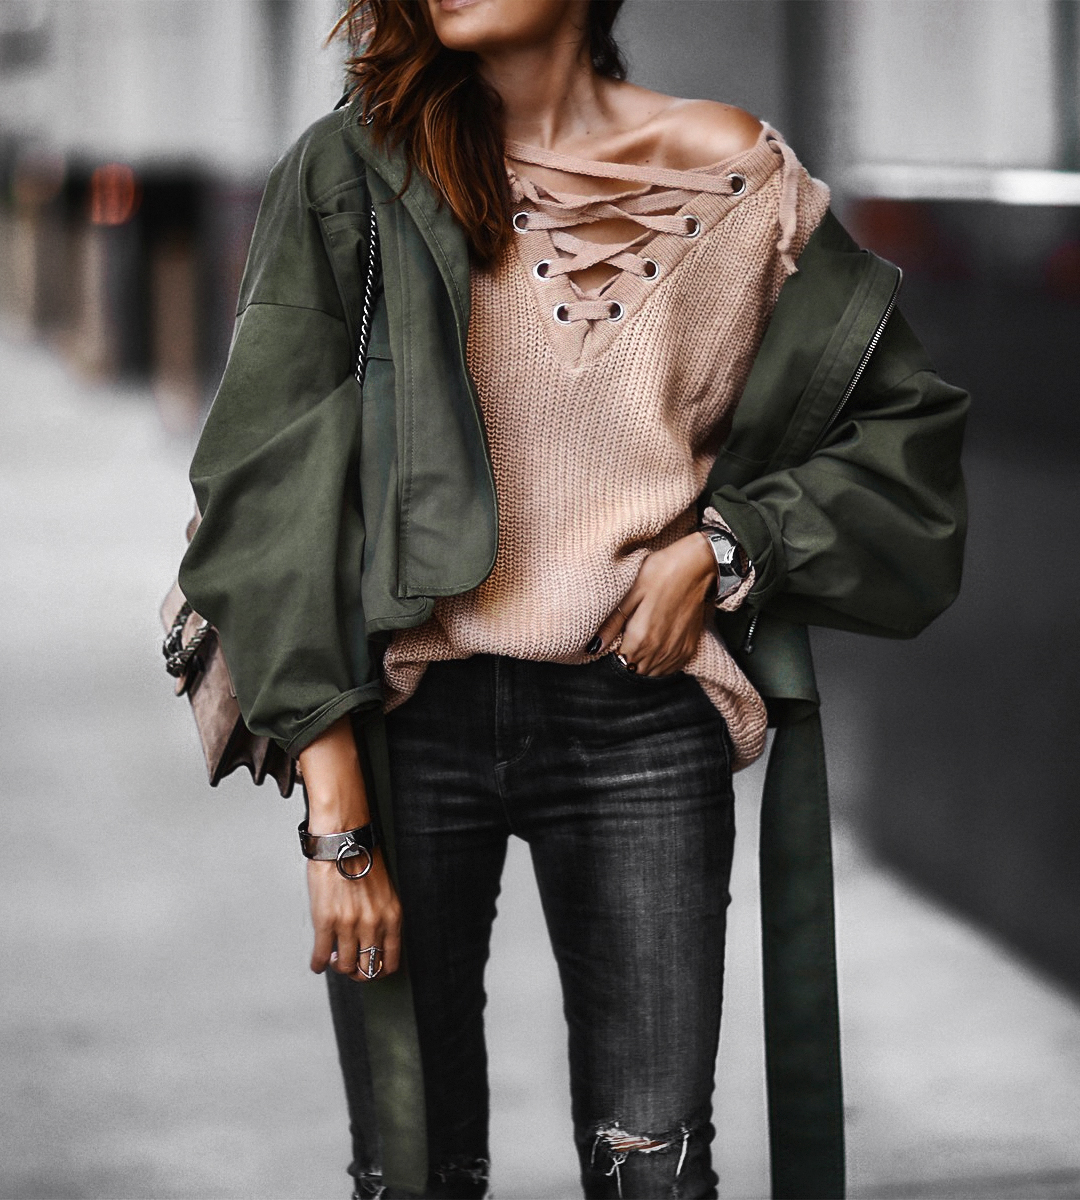 lace up sweater, oversized army green jacket